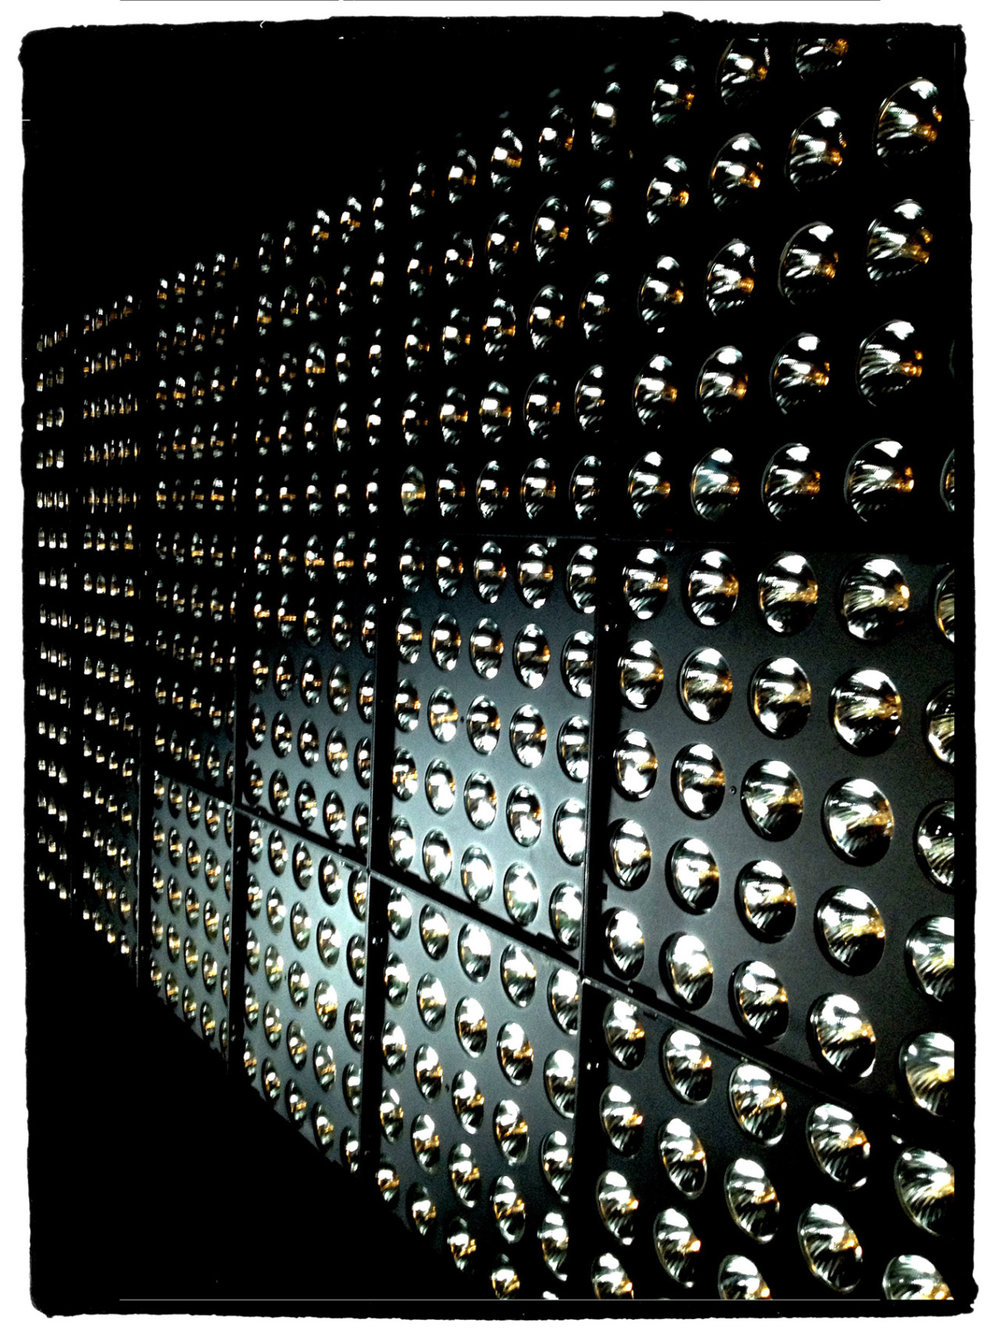 The Jarag by Chromlech- what a light!   This photo shows a wall of 21 individual units- each one is comprised of 25 x 75W par bulbs- a total of 1800 watts per unit, so in this case , 37,800 Watts.    I used this as a light source for one shot and I assure you it kicks out the lumens and heat!    This source is also very versatile- it is easily programmable and is very sensitive / responsive when creating effects sequences.   Examples from this job will follow a few months from now.   Here is a link for more info on the Jarag:     http://www.chromlech.fr/pages/en/products/jarag-5-range.php?lang=FR